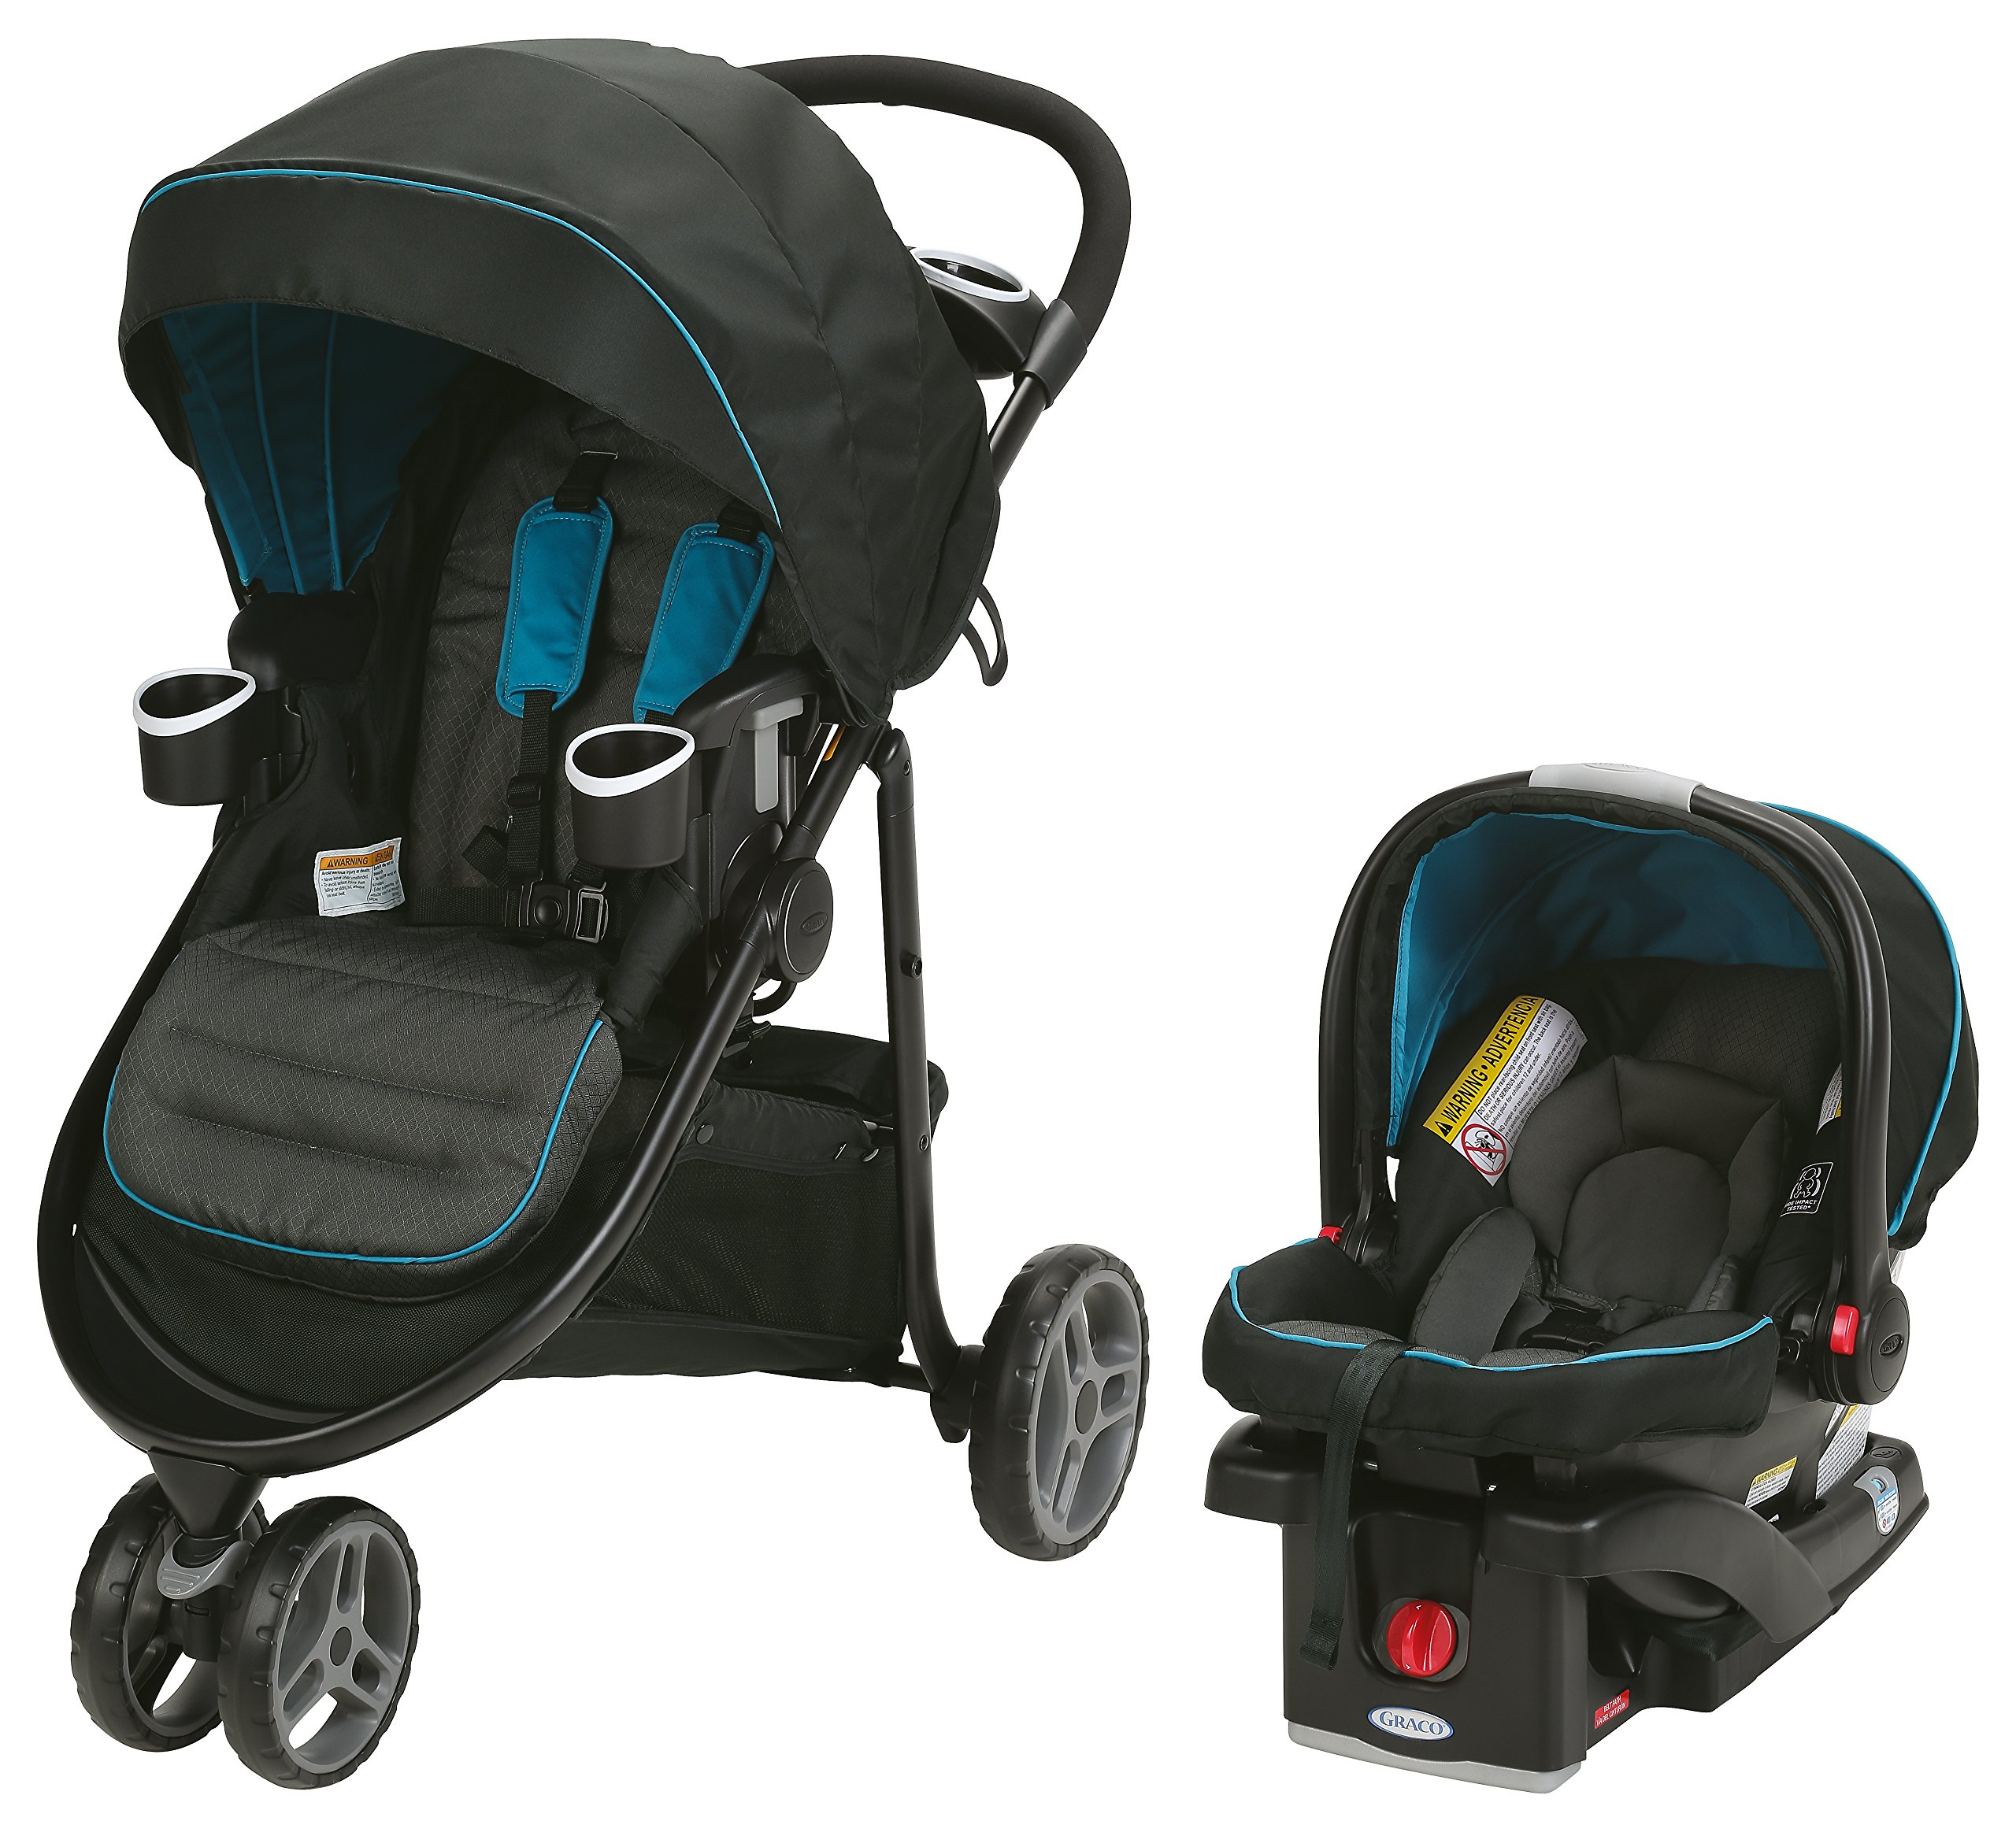 Cheap Graco Stroller Travel System Find Graco Stroller Travel